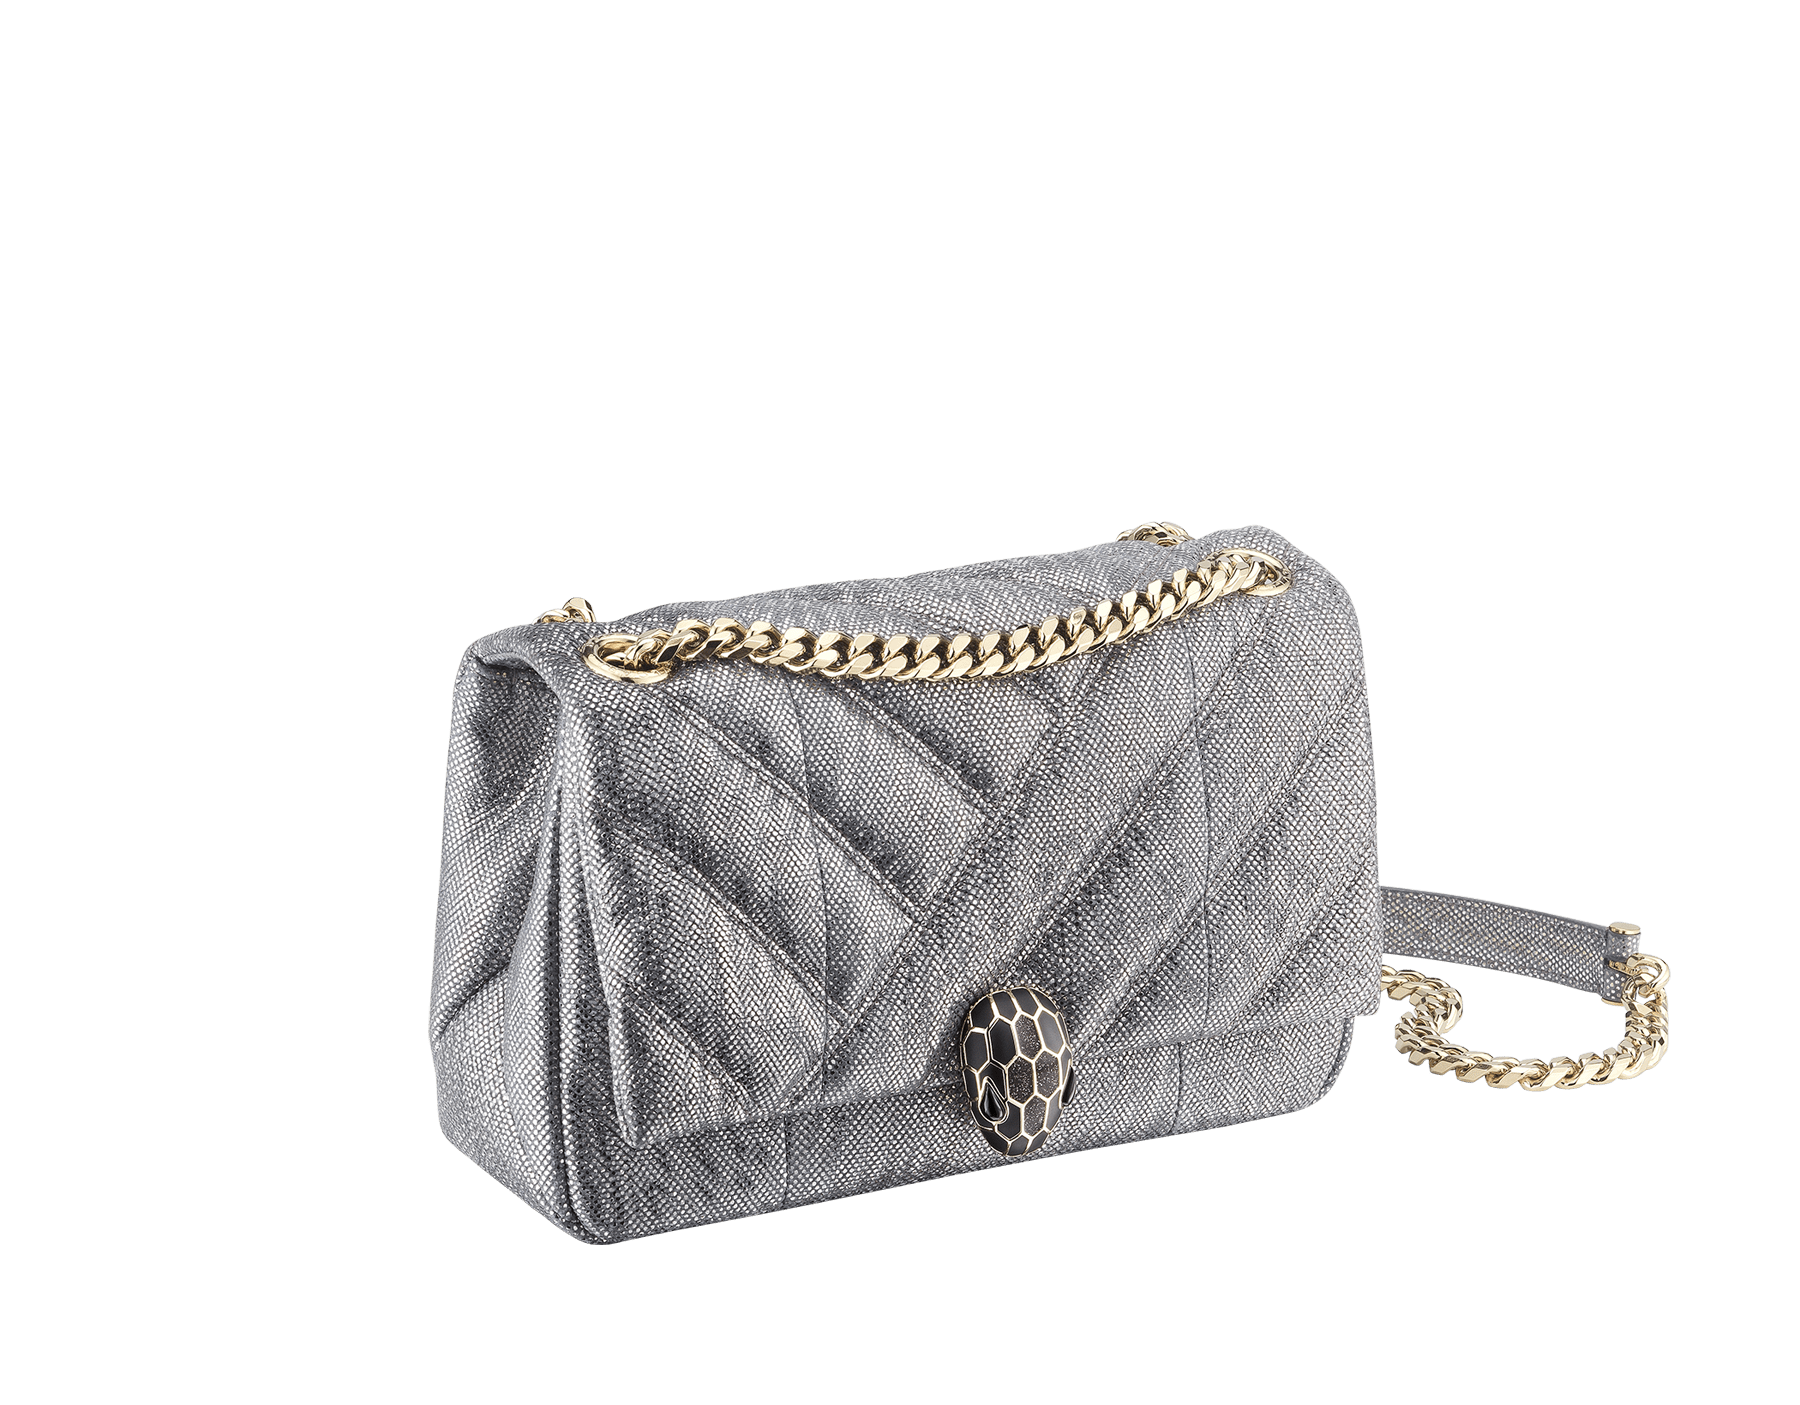 Serpenti Cabochon shoulder bag in soft matelassé charcoal diamond metallic karung skin with graphic motif. Snakehead closure in light gold plated brass decorated with matte black and glitter charcoal diamond enamel, and black onyx eyes. 288617 image 2